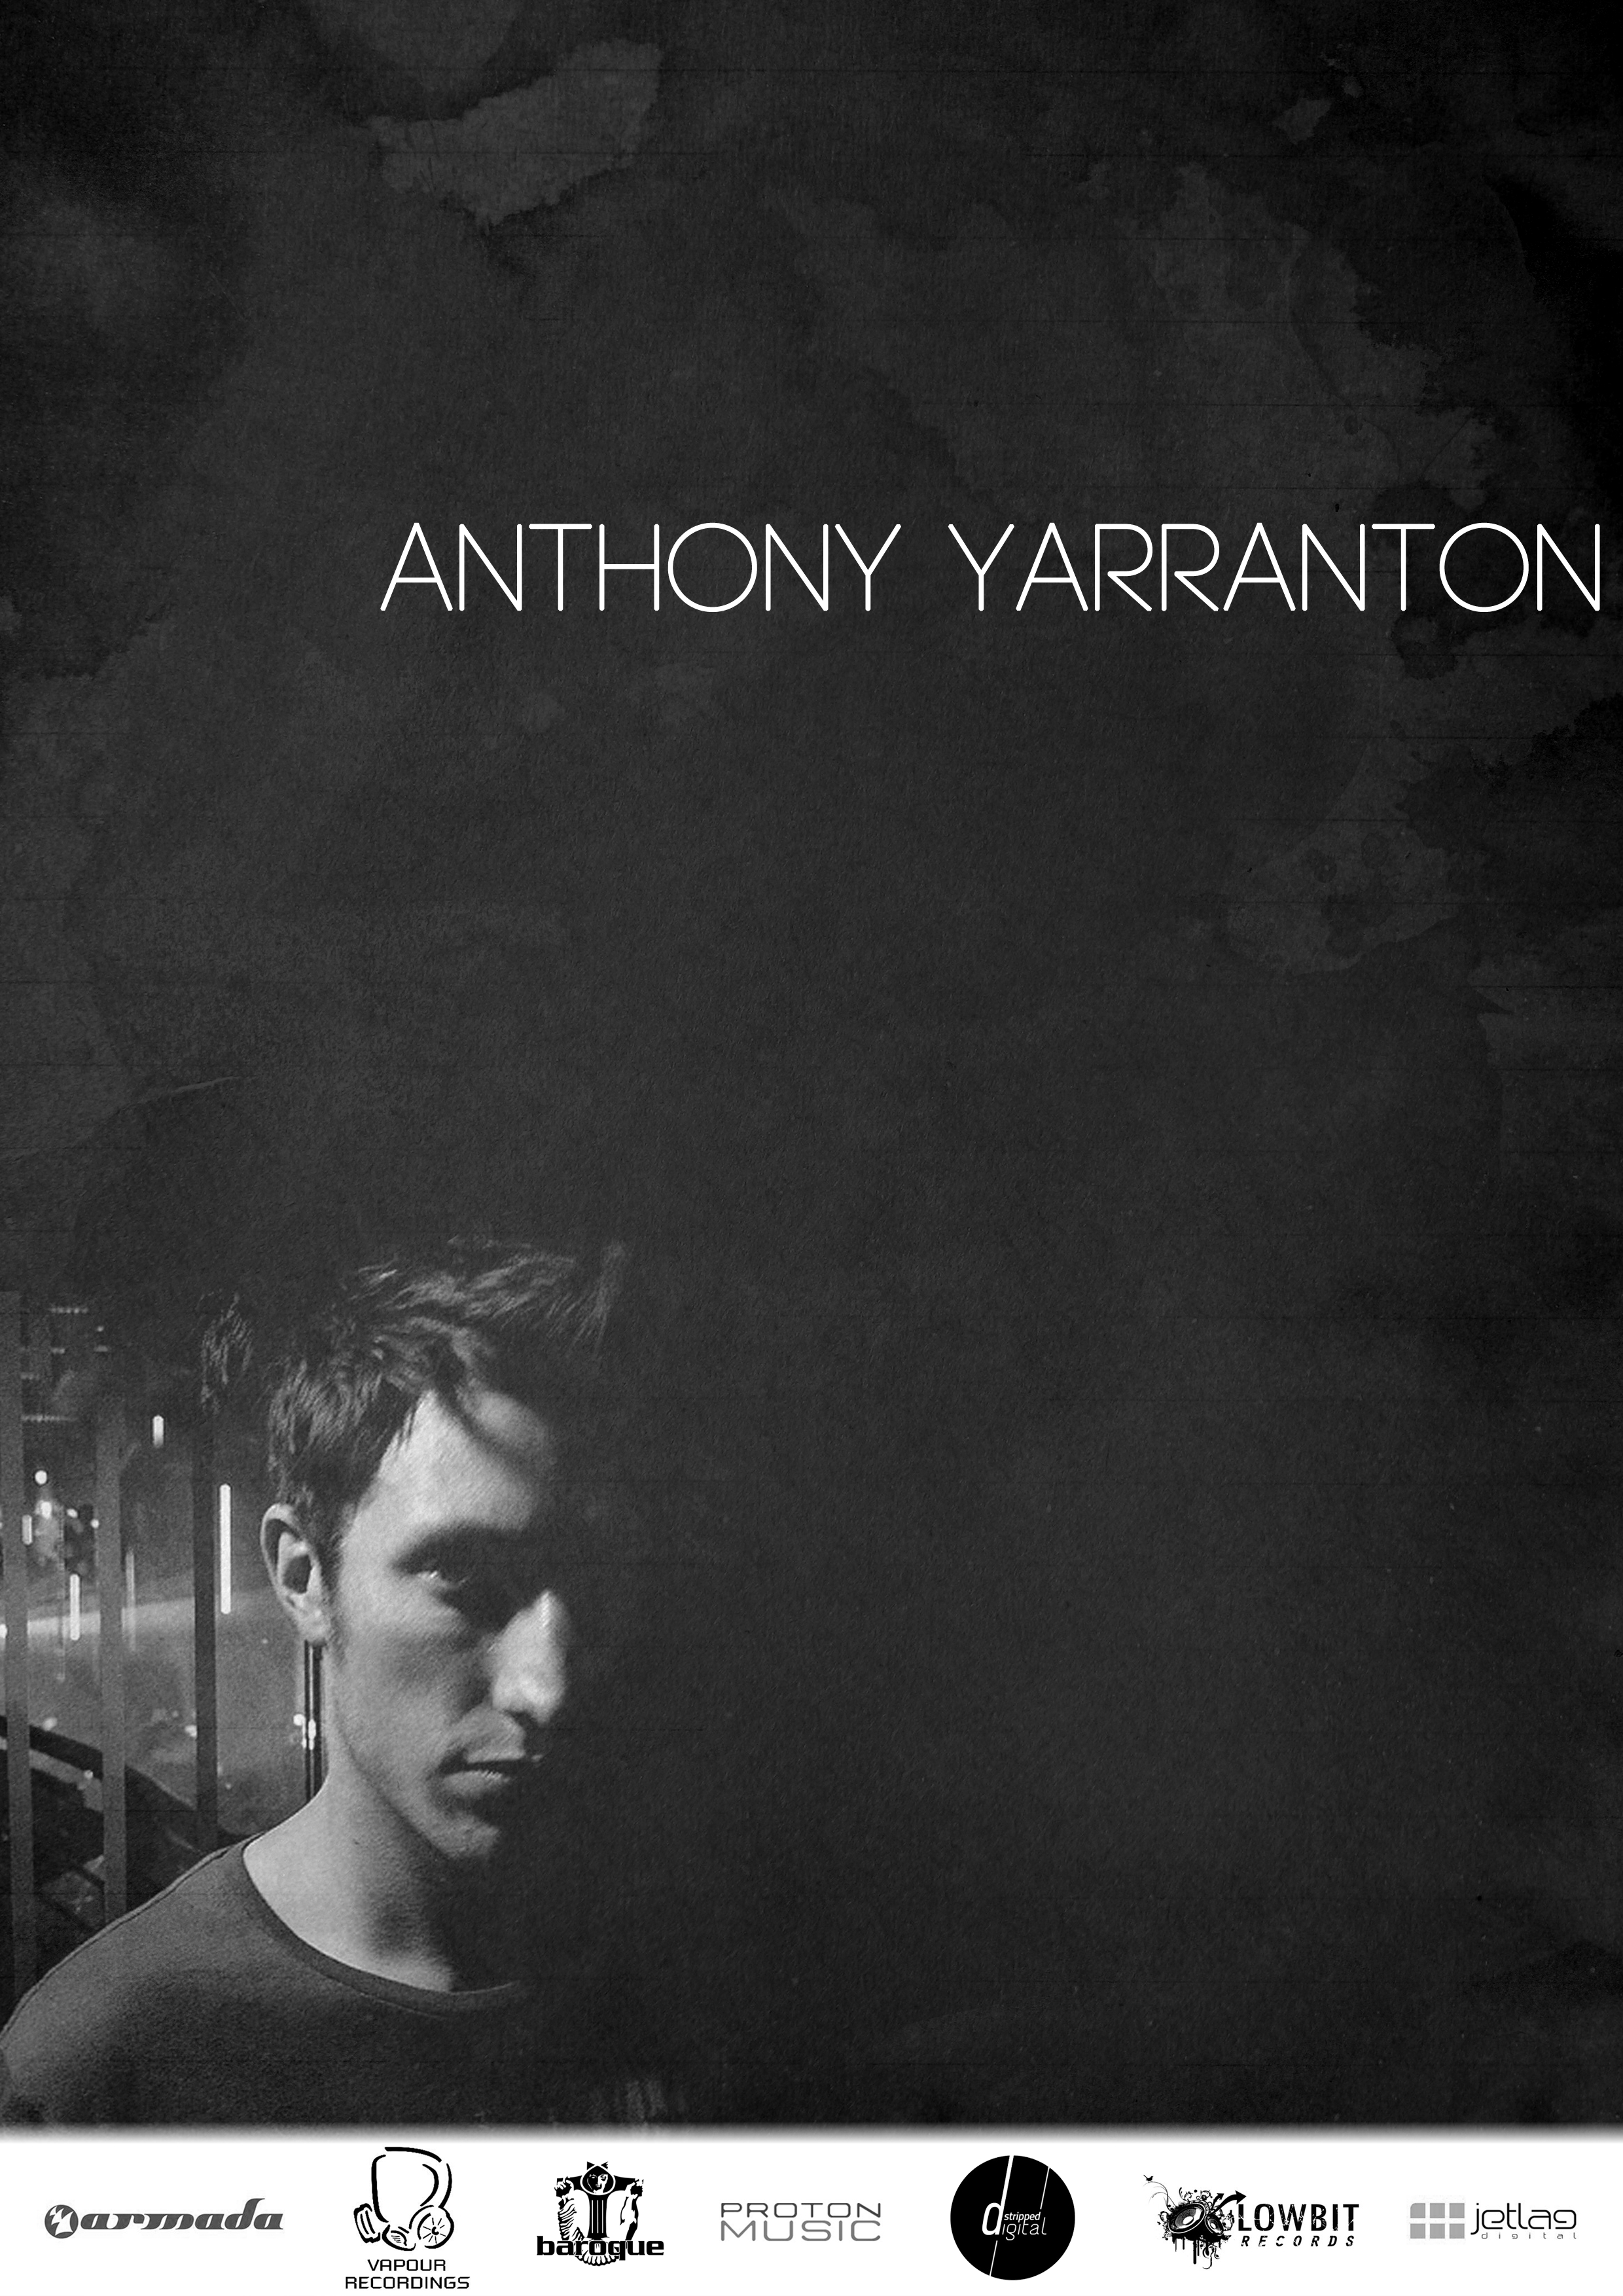 Anthony Yarrantonimages_Page_1.jpg